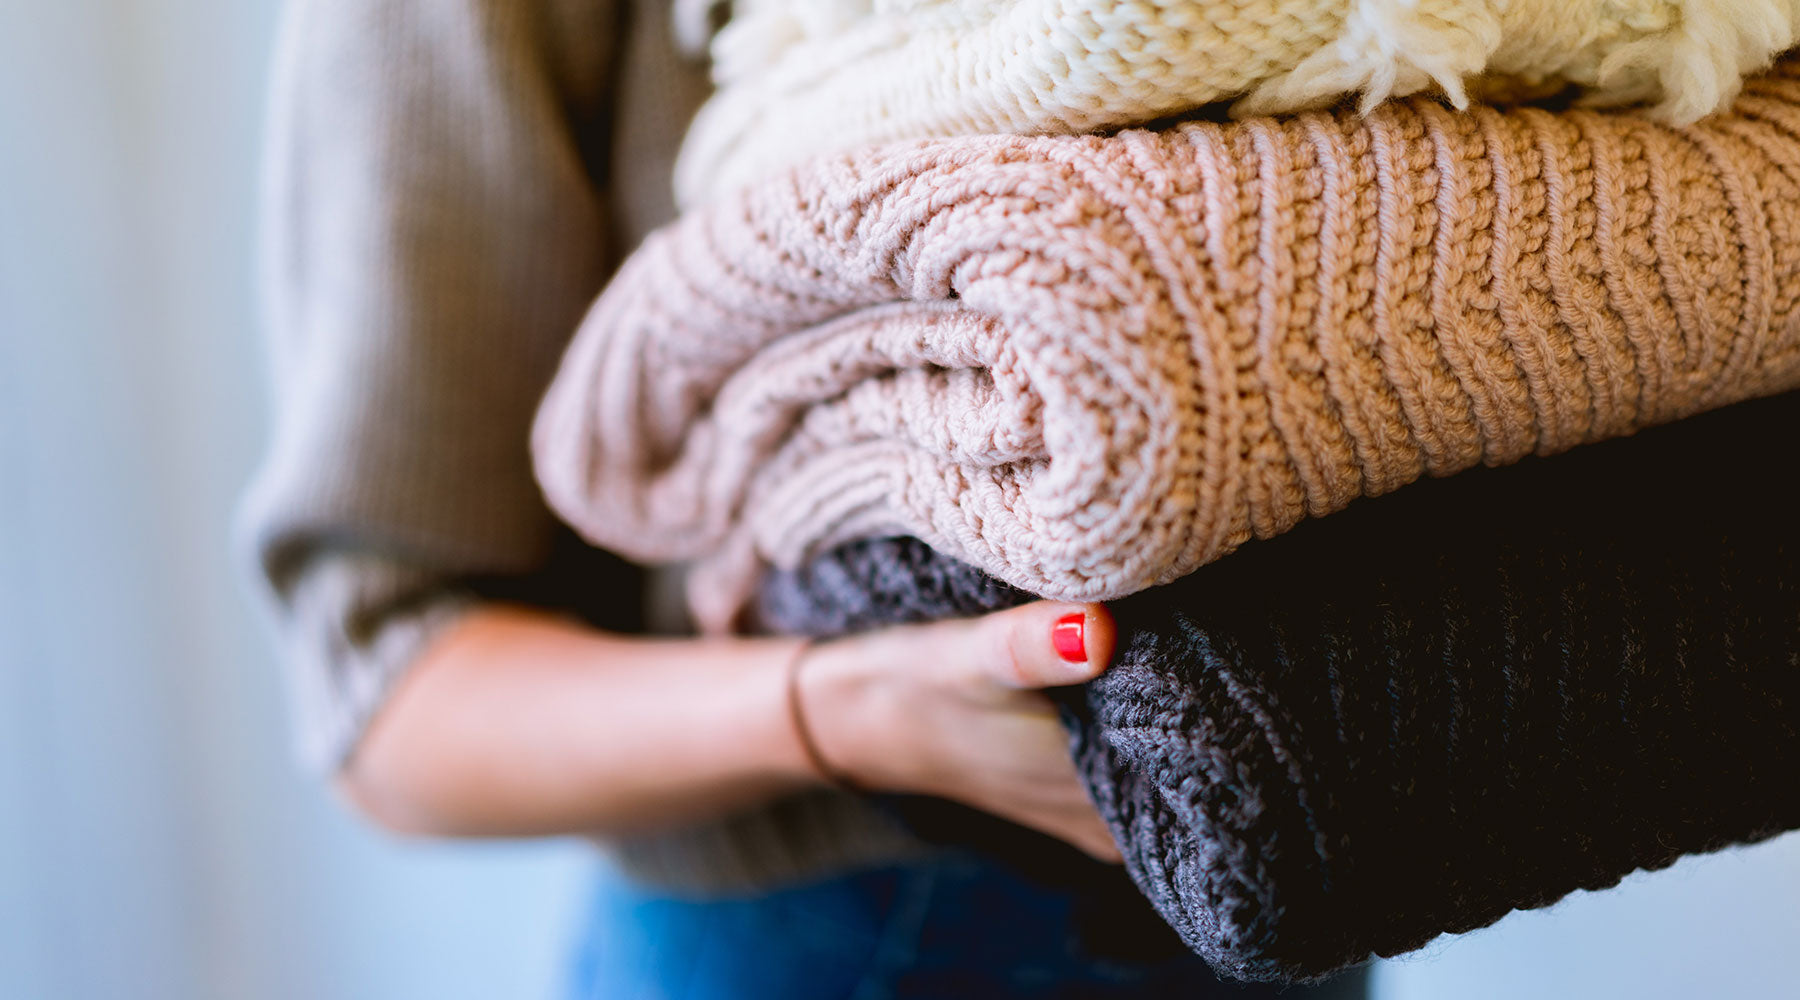 How to Knit a Sweater That Fits Perfectly